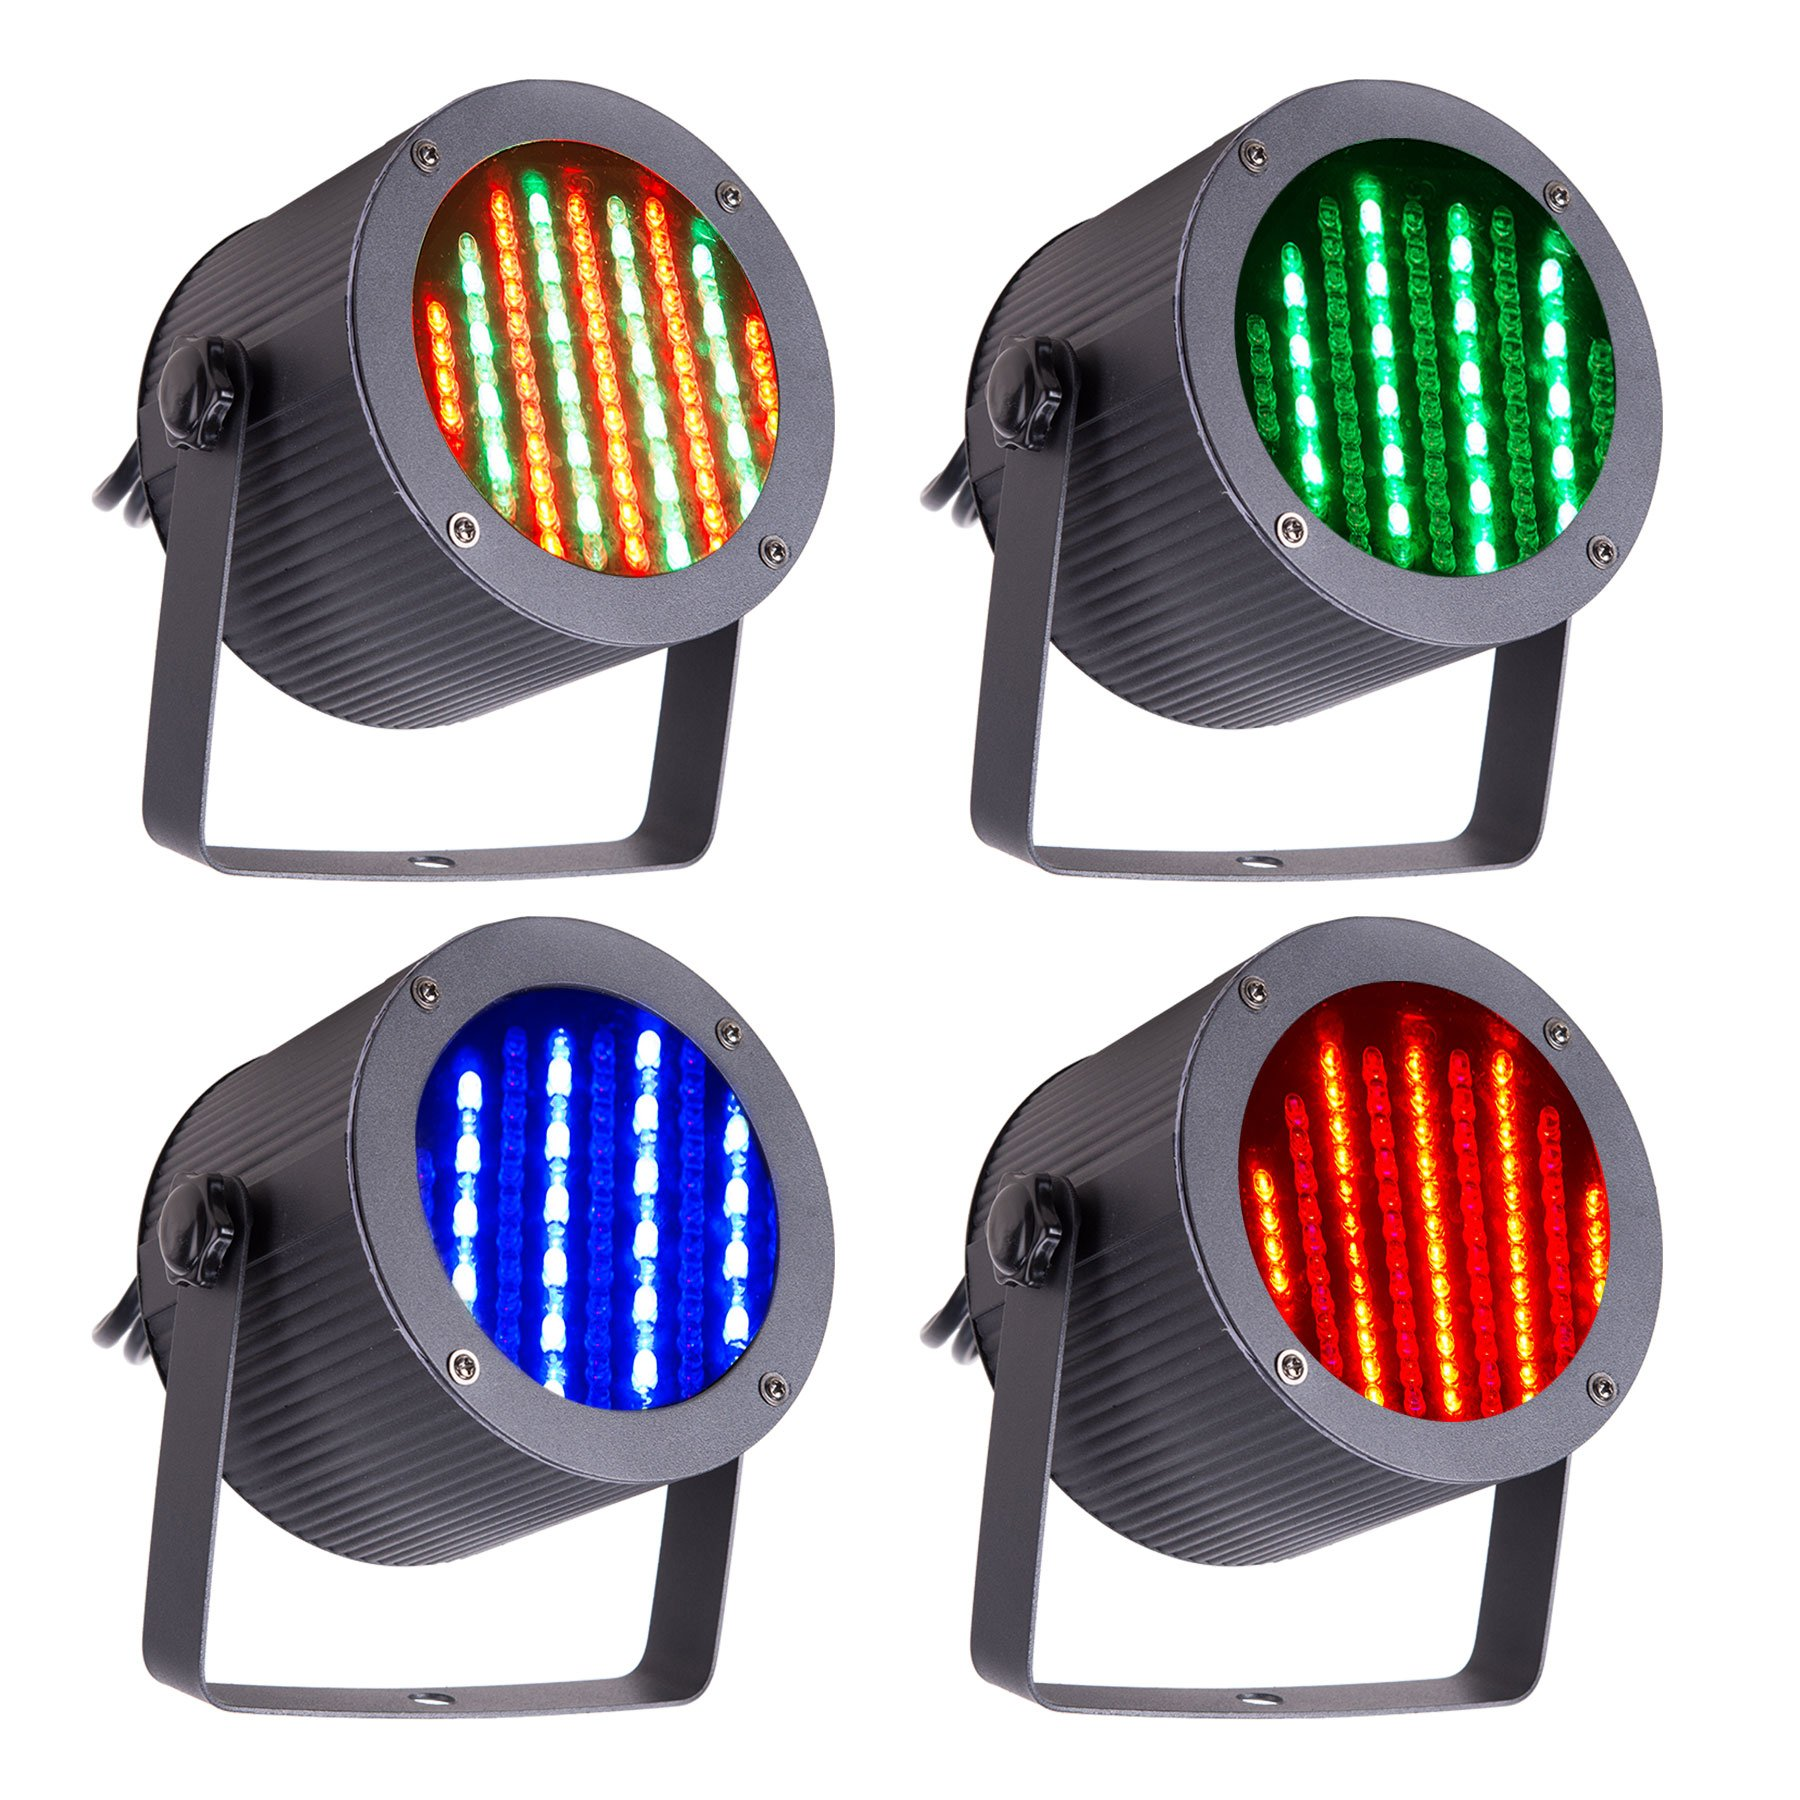 CO-Z 4pcs DMX Controlled LED Stage Lights, 86 RGB Sound Activated Par Stage Effect Lighting for Home Party Festival Bar Club Wedding Church Uplighting by CO-Z